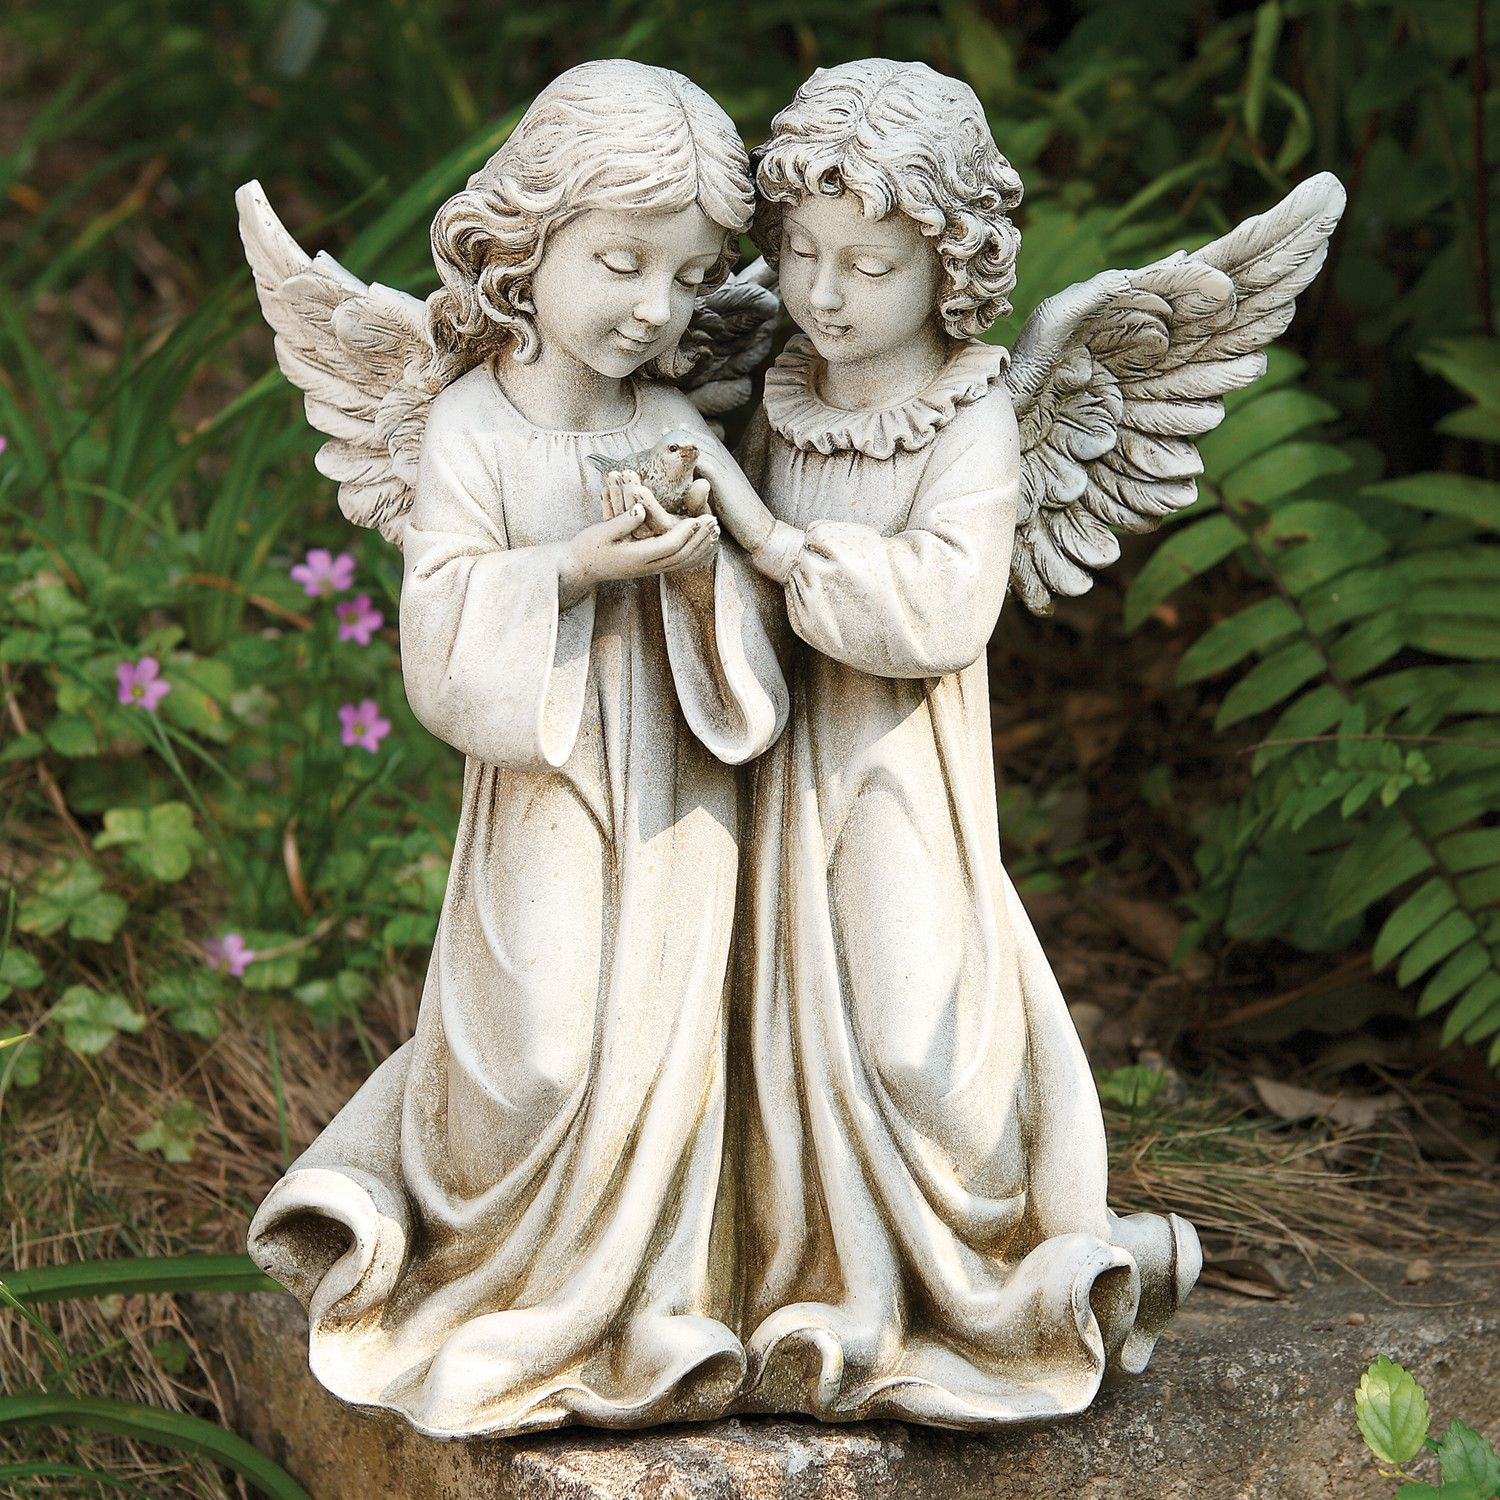 angel yard your outdoor inch art figurines large christmas celtic kissing angels everyone garden statue cherub baby duck cherubs donkey praying prayer kneeling figure lawn statues